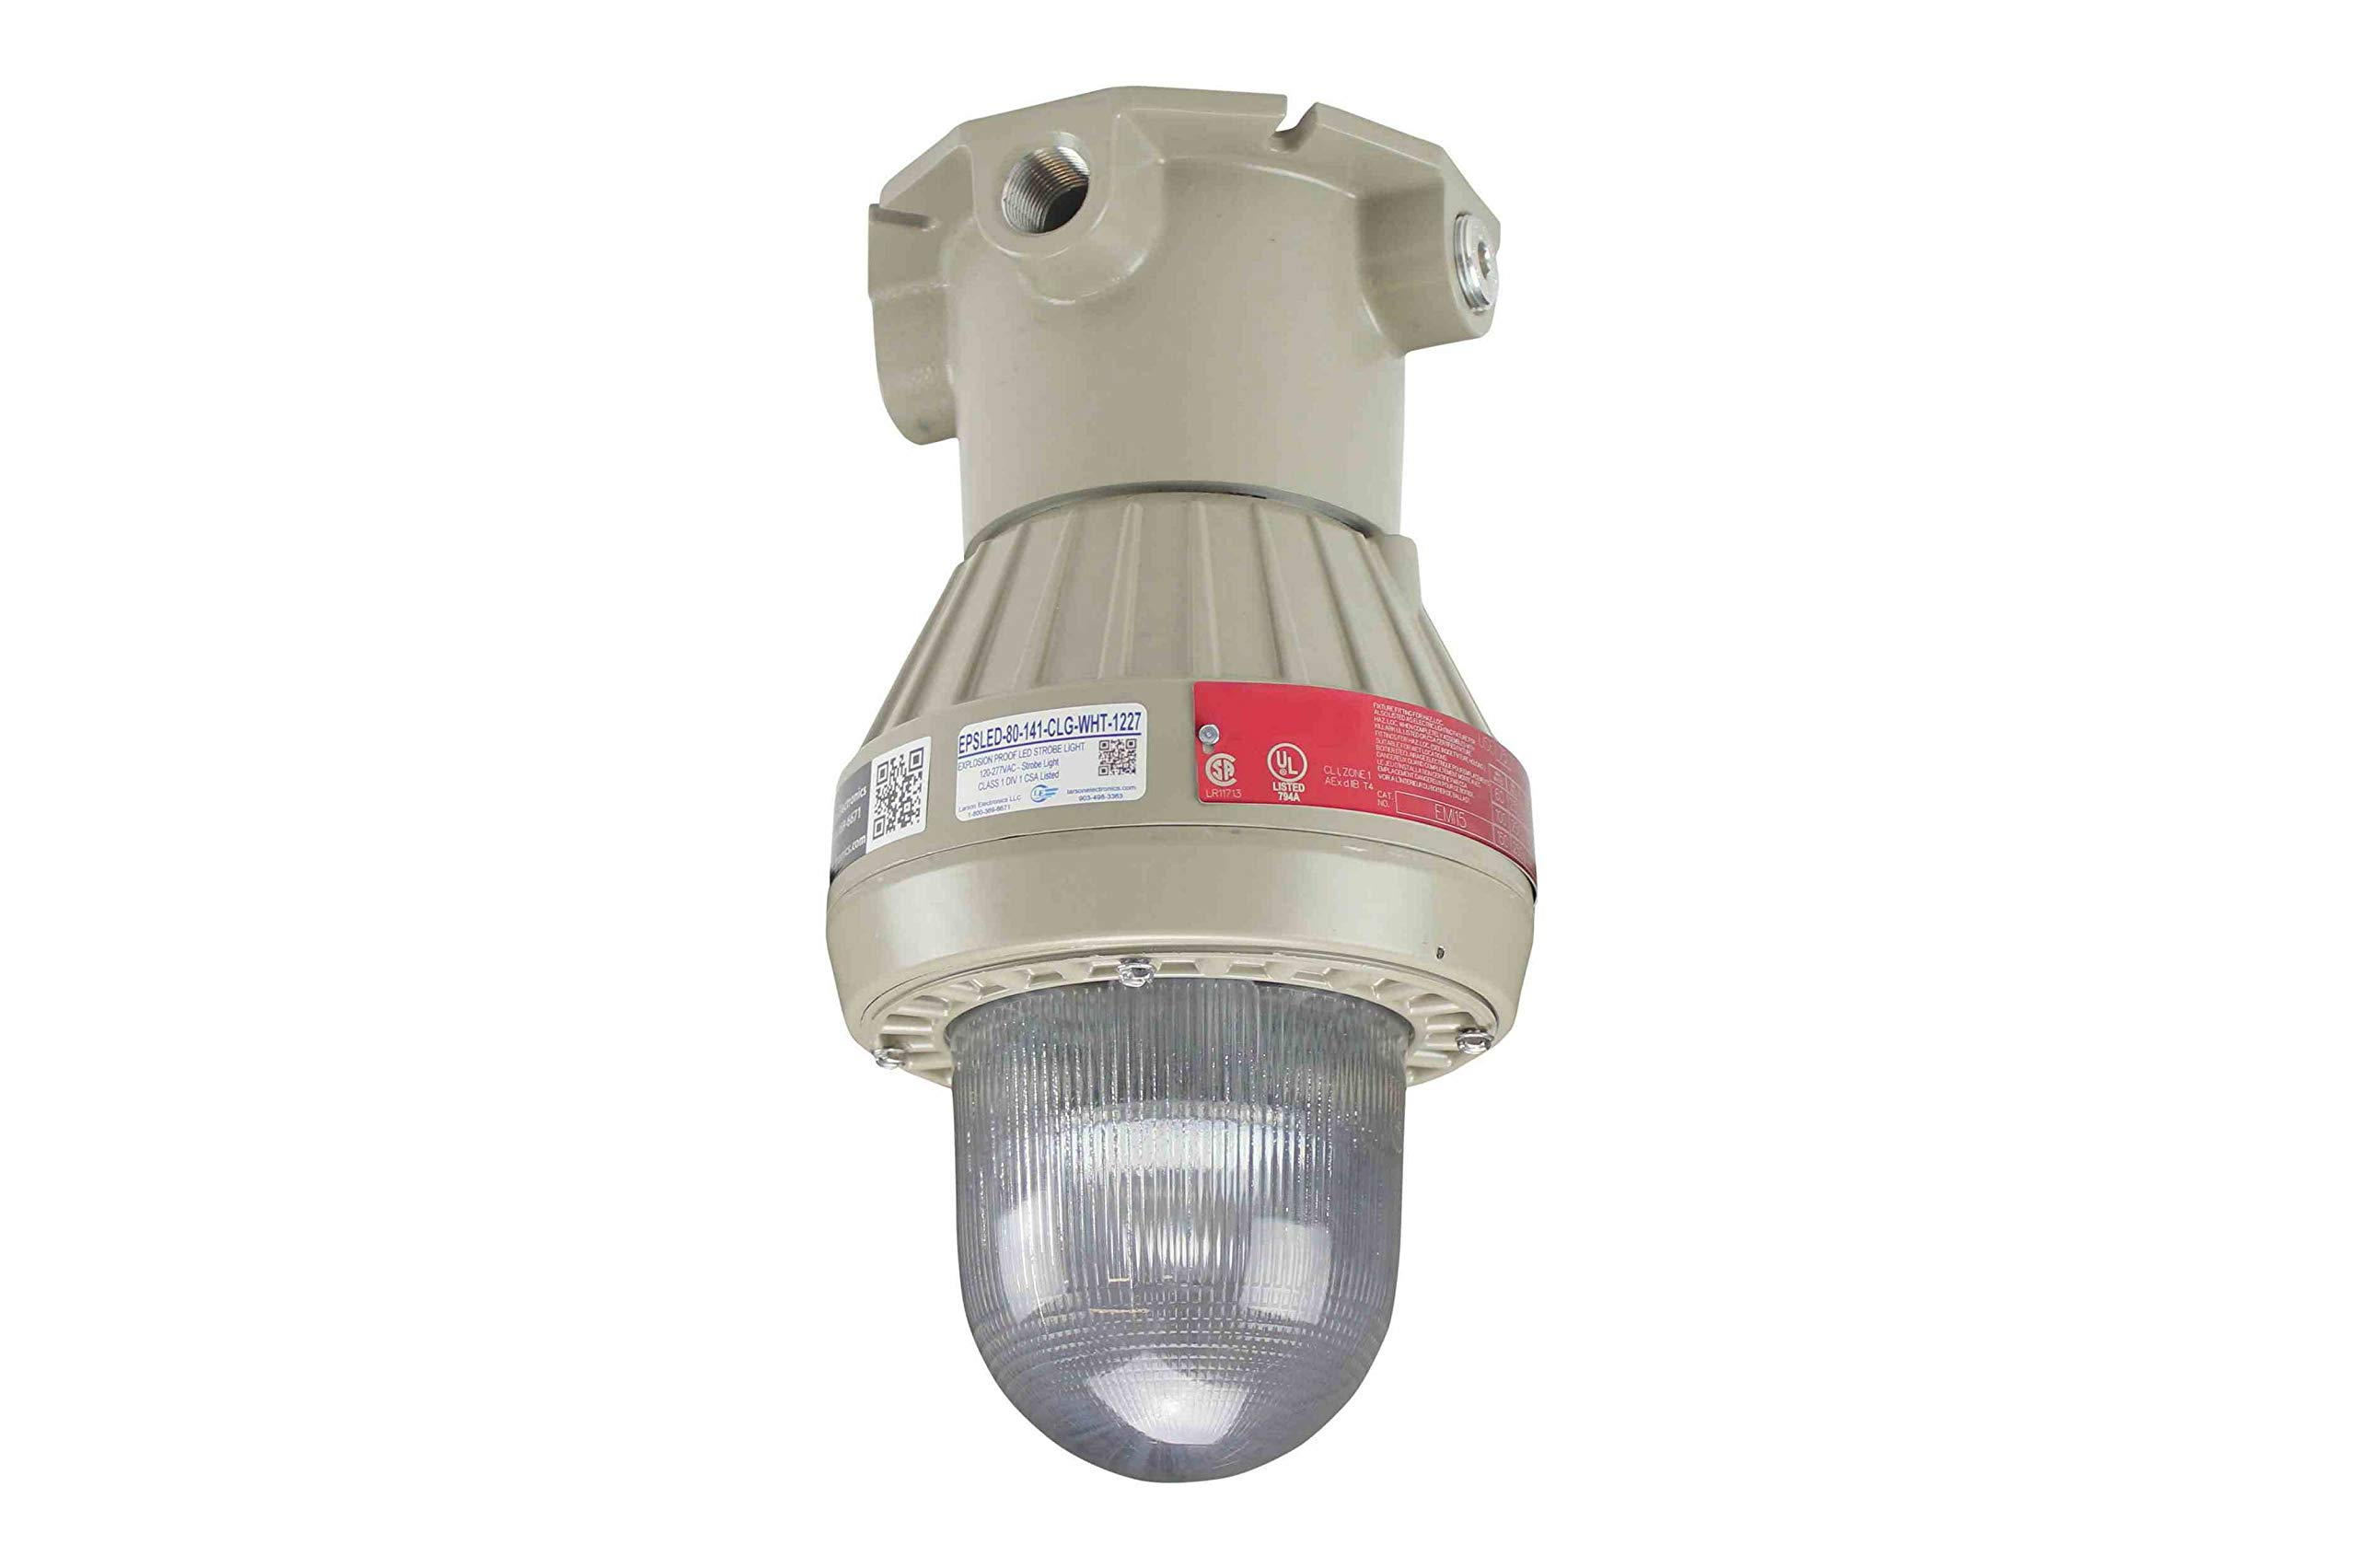 Explosion Proof LED Strobe Light - 120-277 Volts AC - Low Voltage - Class 1 Div. 1 - CSA Listed